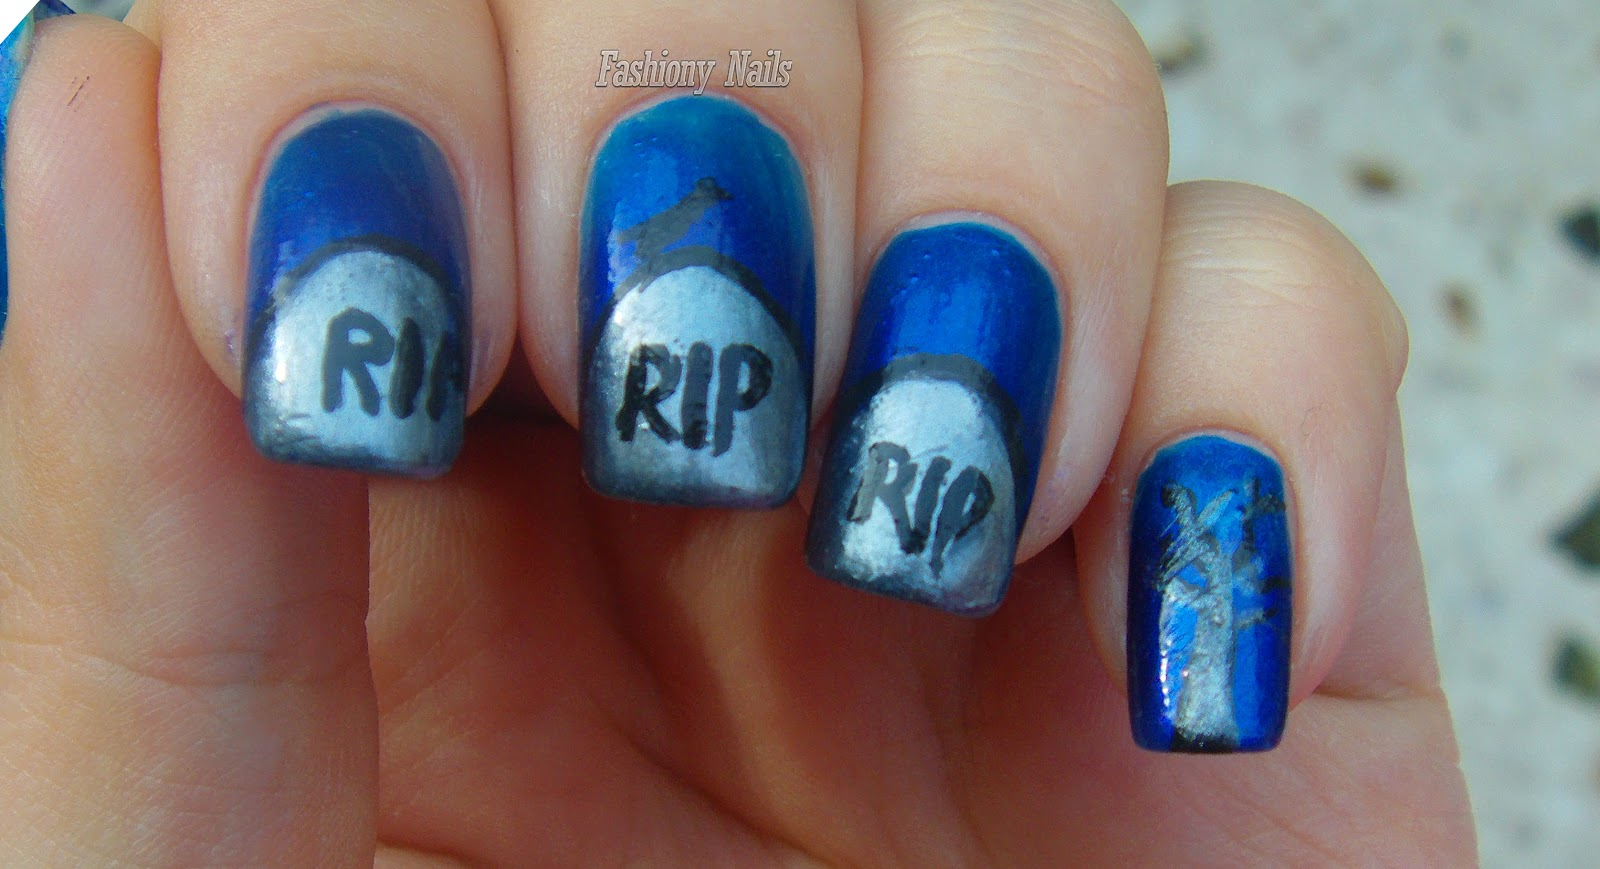 Halloween nail art challenge tombstone fashiony nails beauty blog halloween nail art tombstone prinsesfo Choice Image